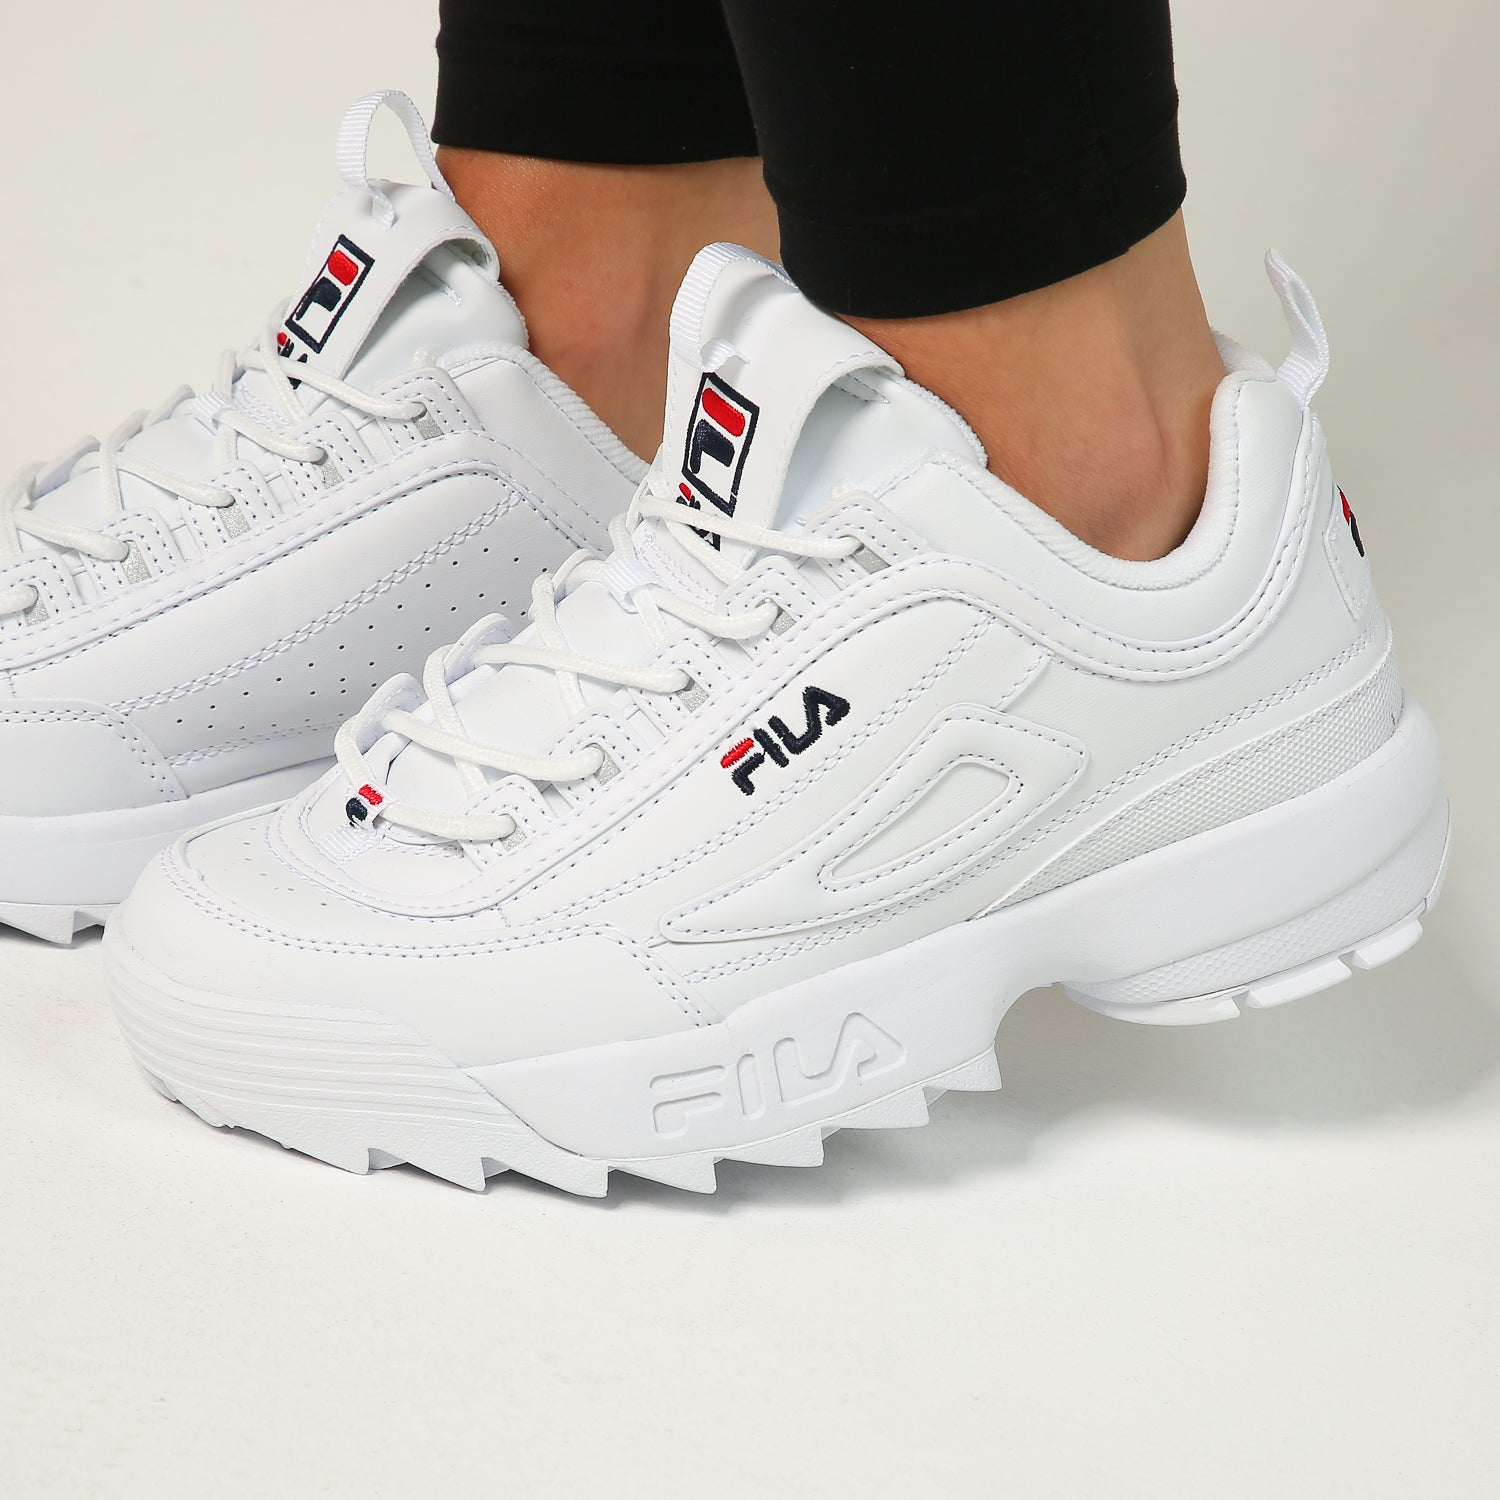 Fila Women's Disruptor II WhiteNavyRed